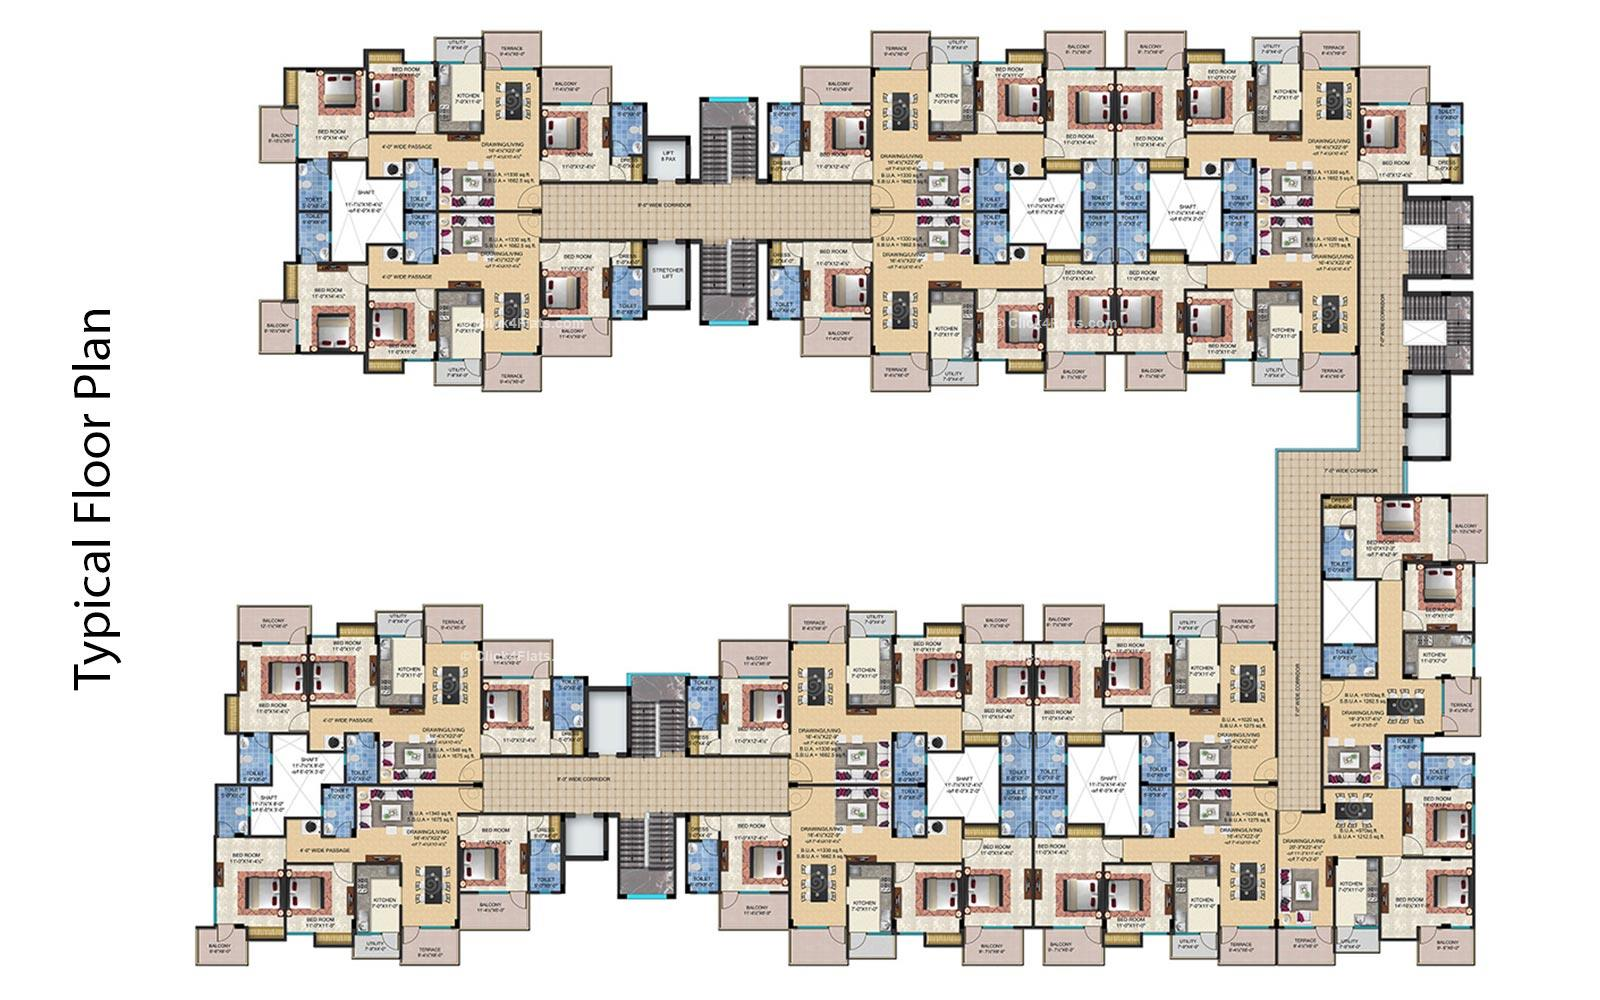 Shivalika Typical Floor Plan